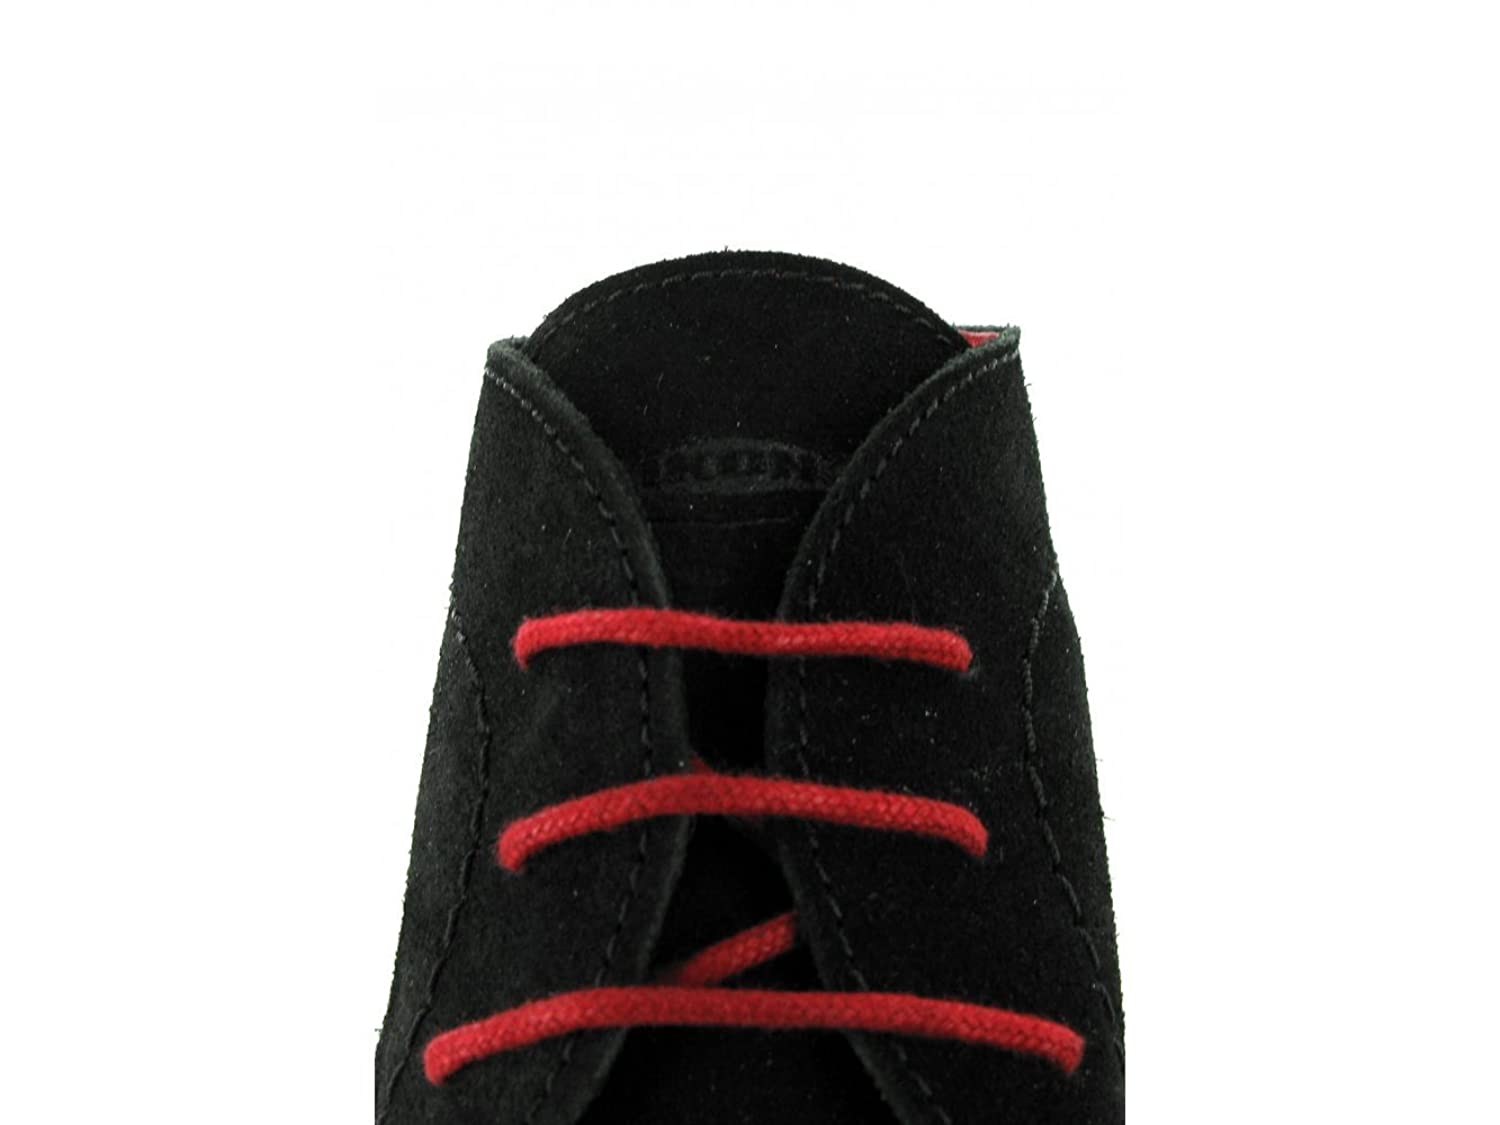 Ikon NOMAD Mens 3 Eyelet Suede Desert Boots Black And Red: Amazon.co.uk:  Shoes & Bags